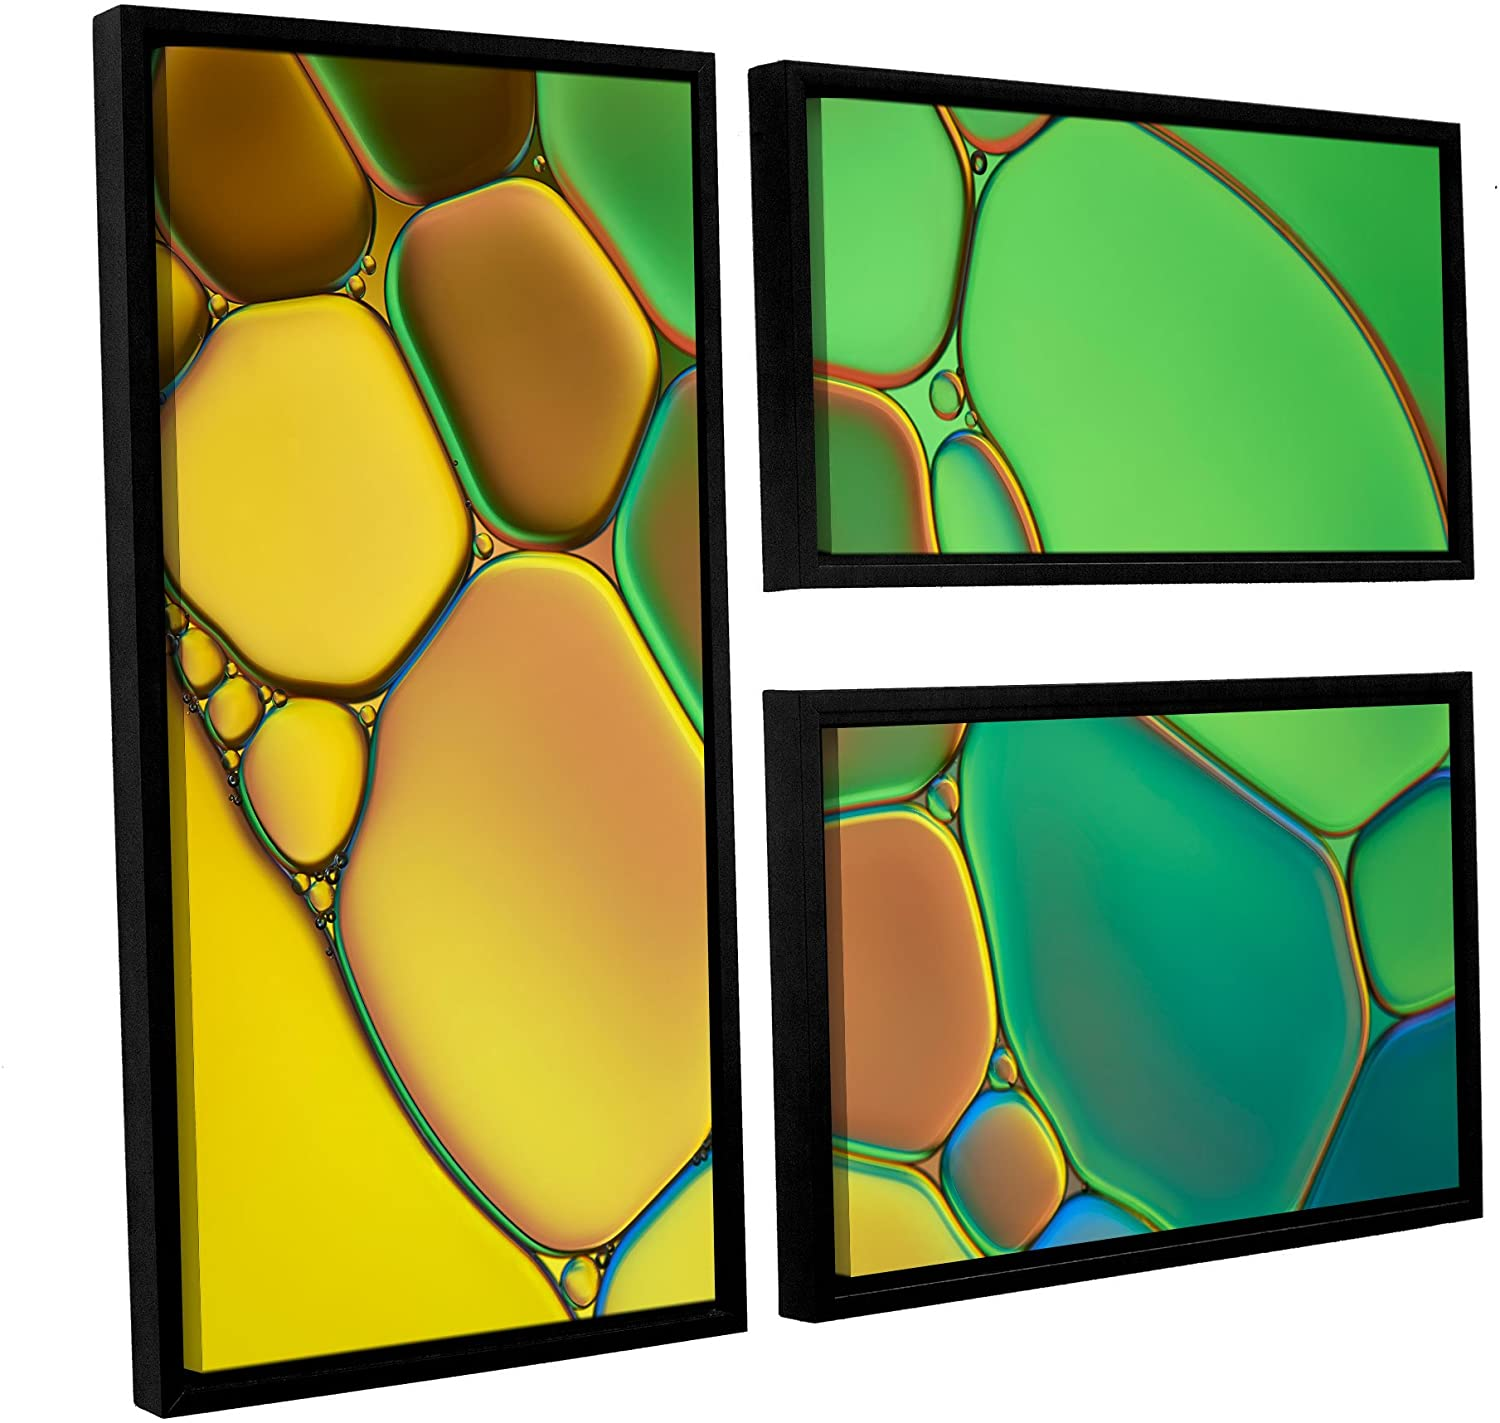 ArtWall Cora Niele's Stained Glass III 3 Piece Floater Framed Canvas Flag Set, 24 by 36